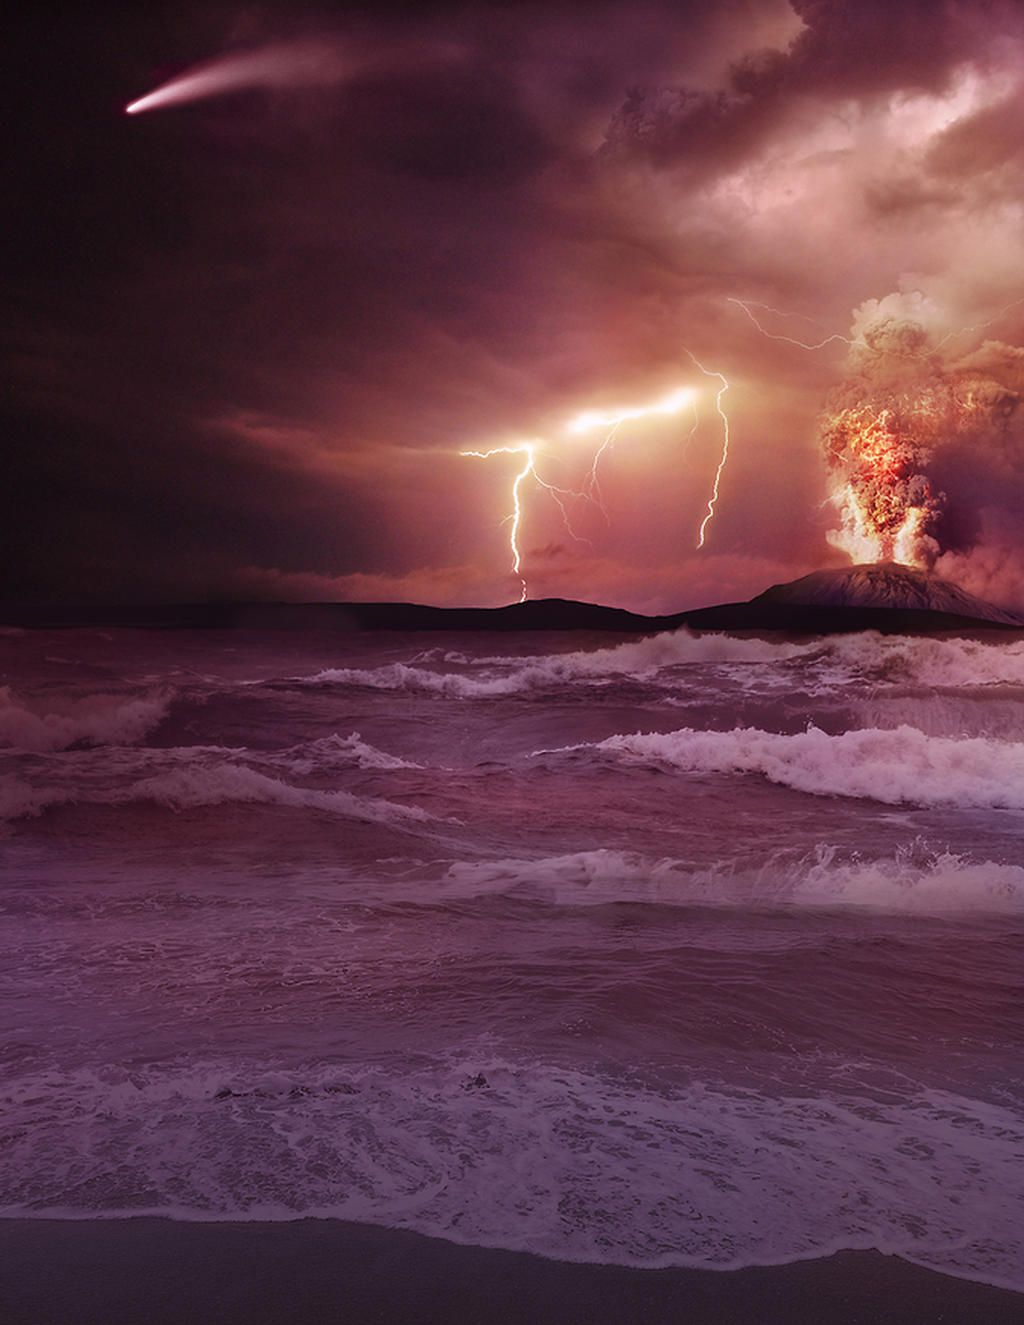 Life May Have Begun 4.1 Billion Years Ago on an Infant Earth